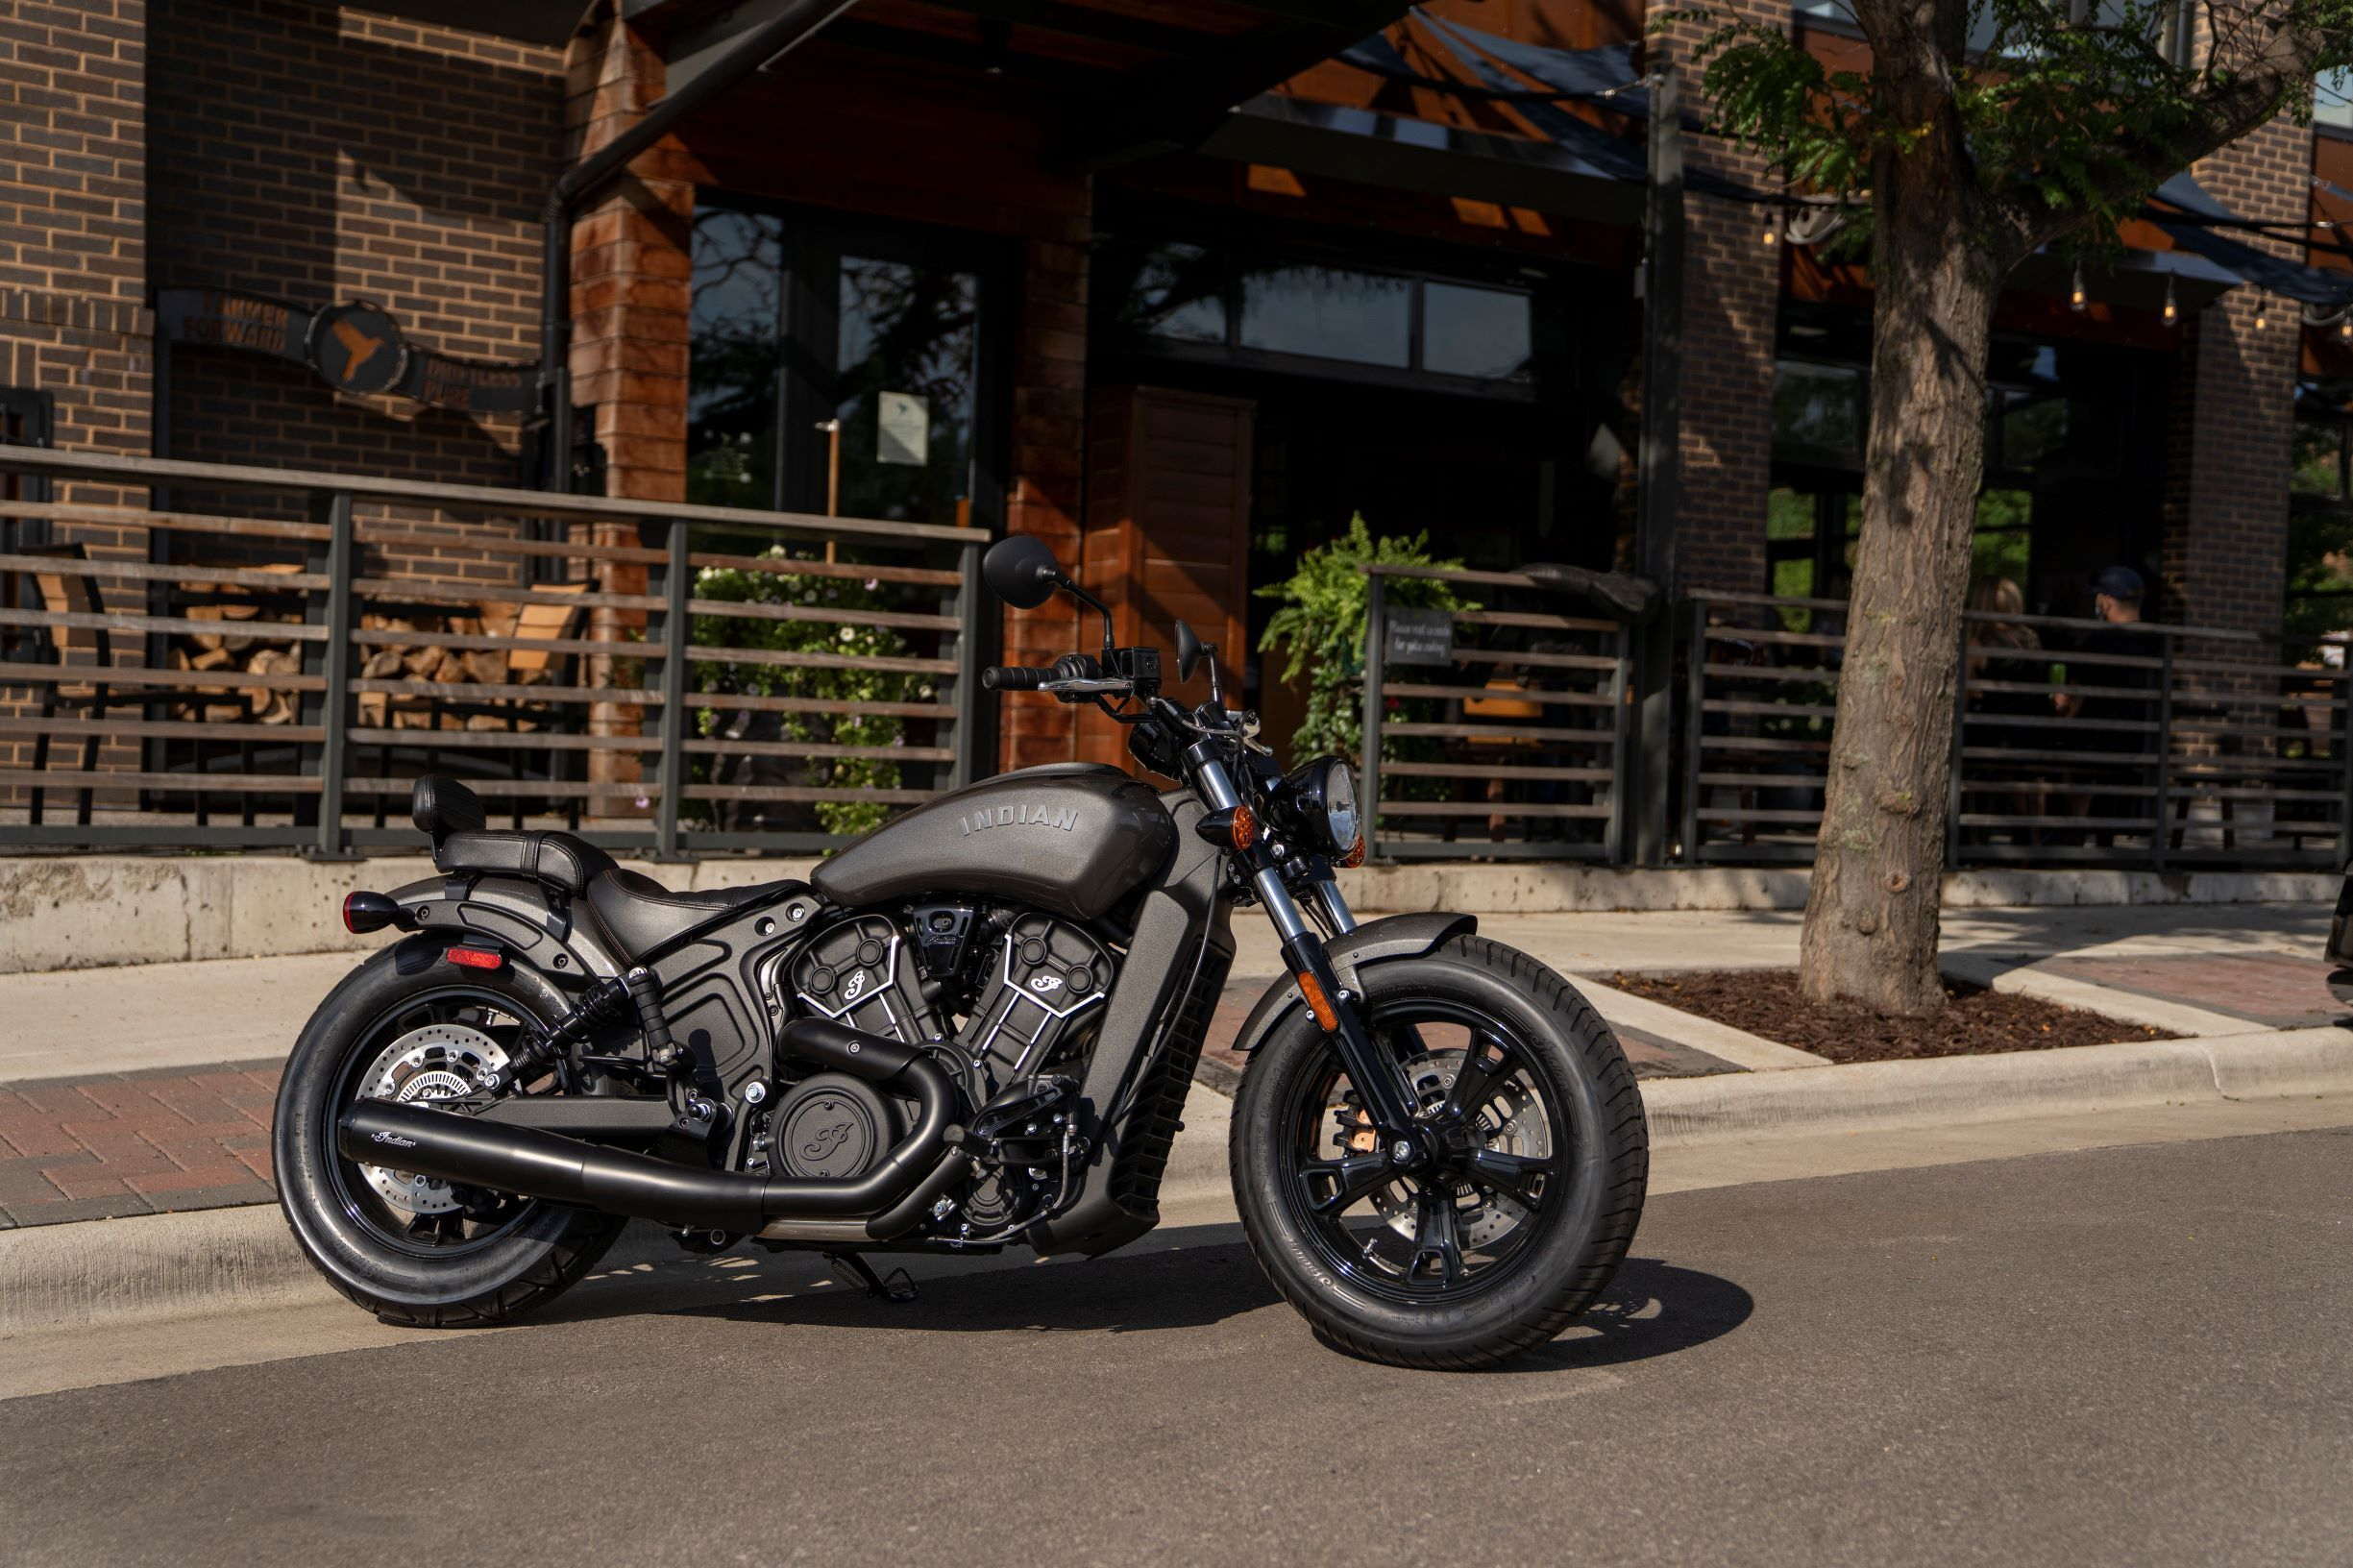 The Indian Scout Bobber Sixty Is A Killer Starter Bike For Any Age Rider